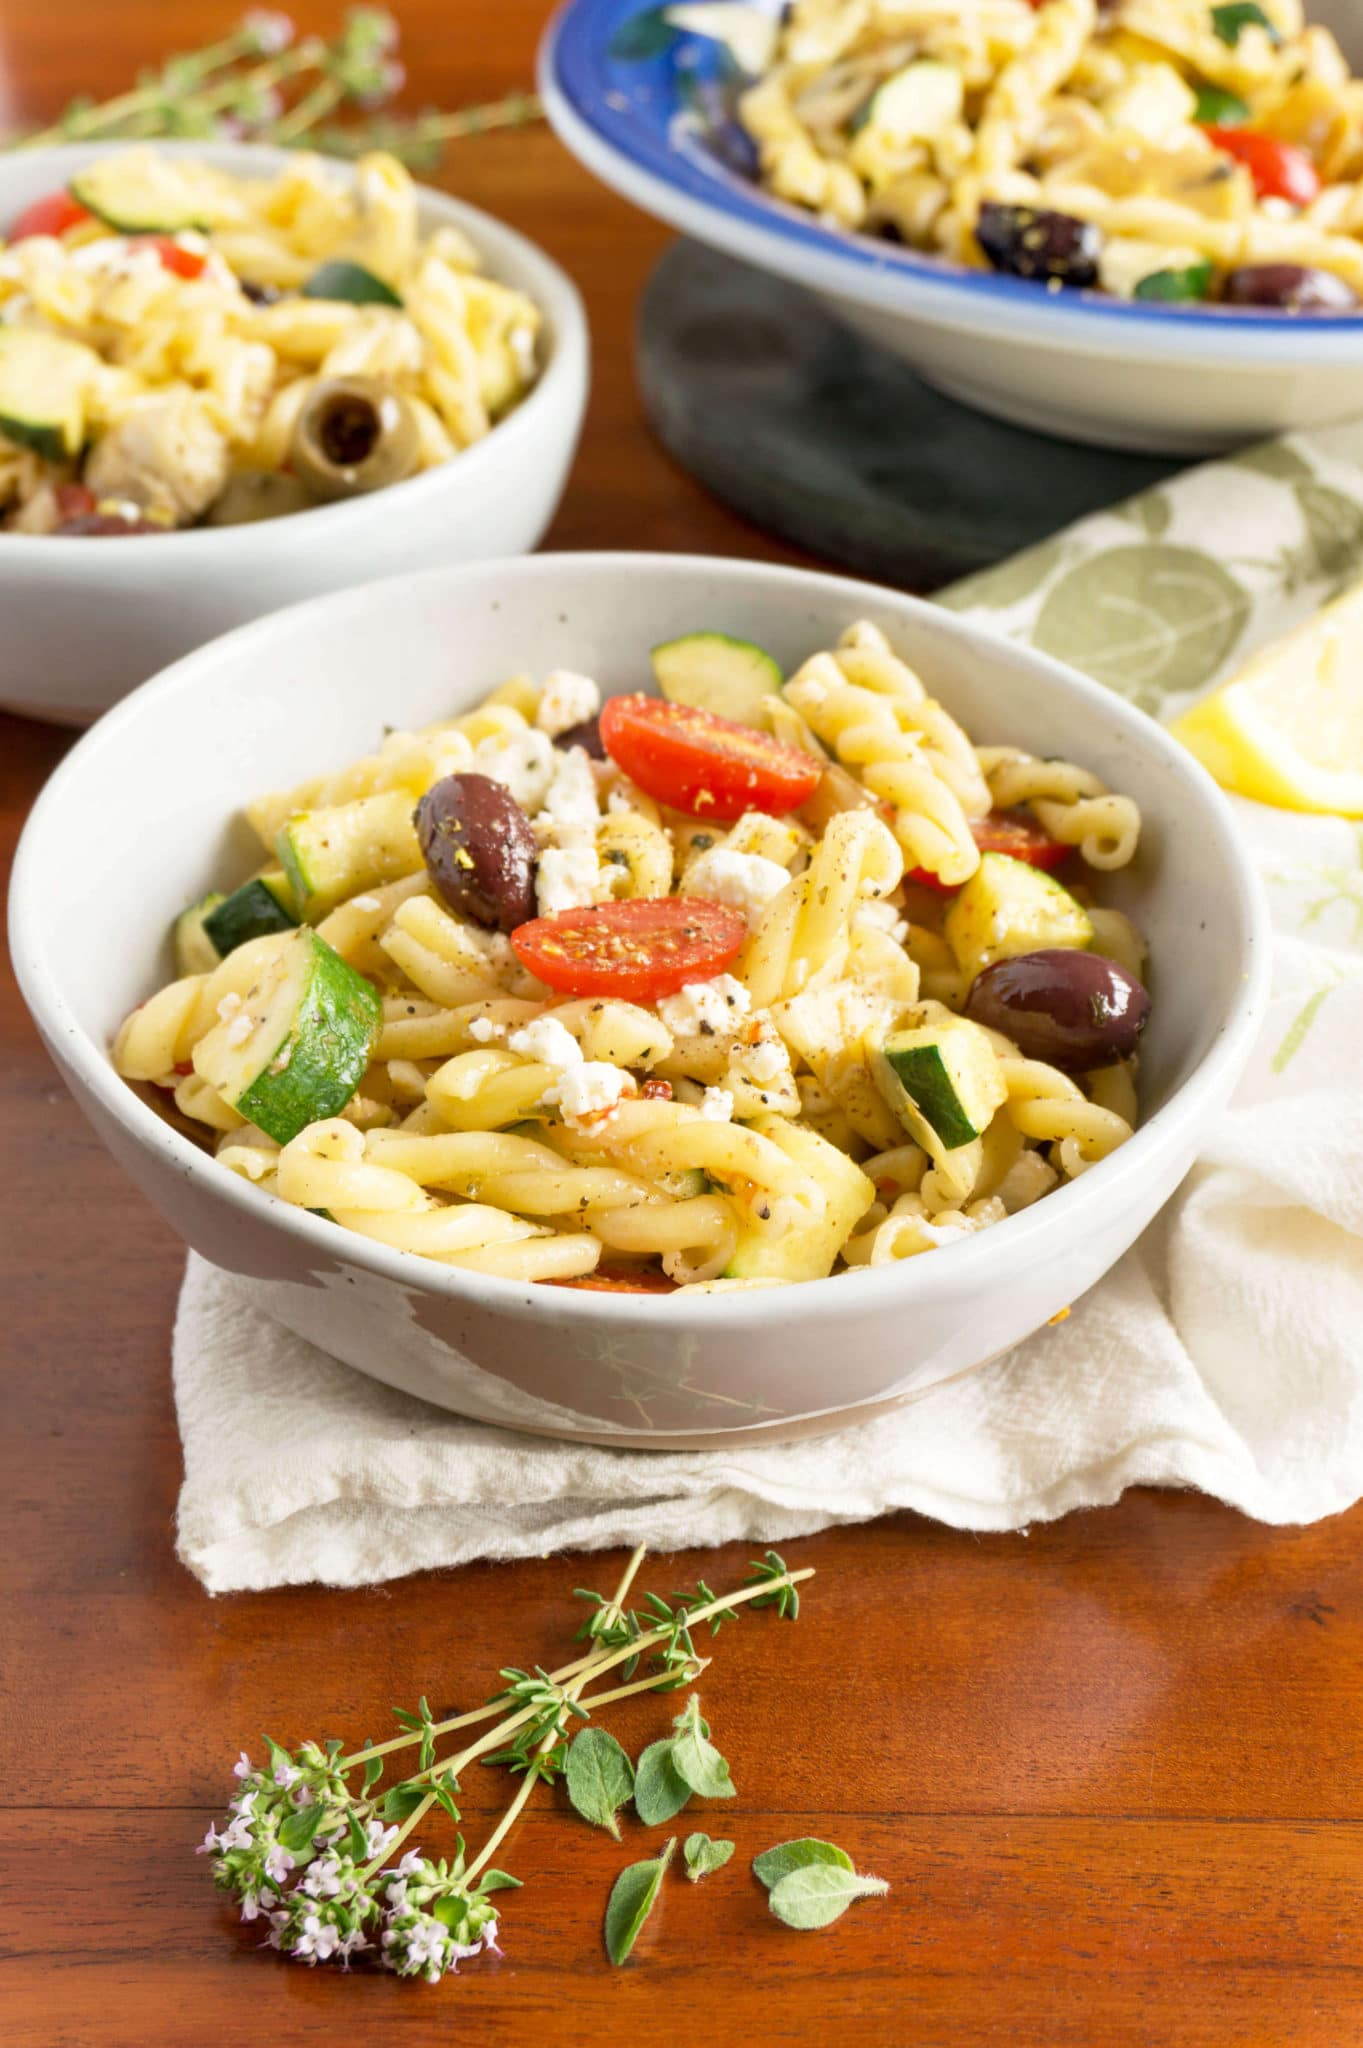 Pasta in bowls